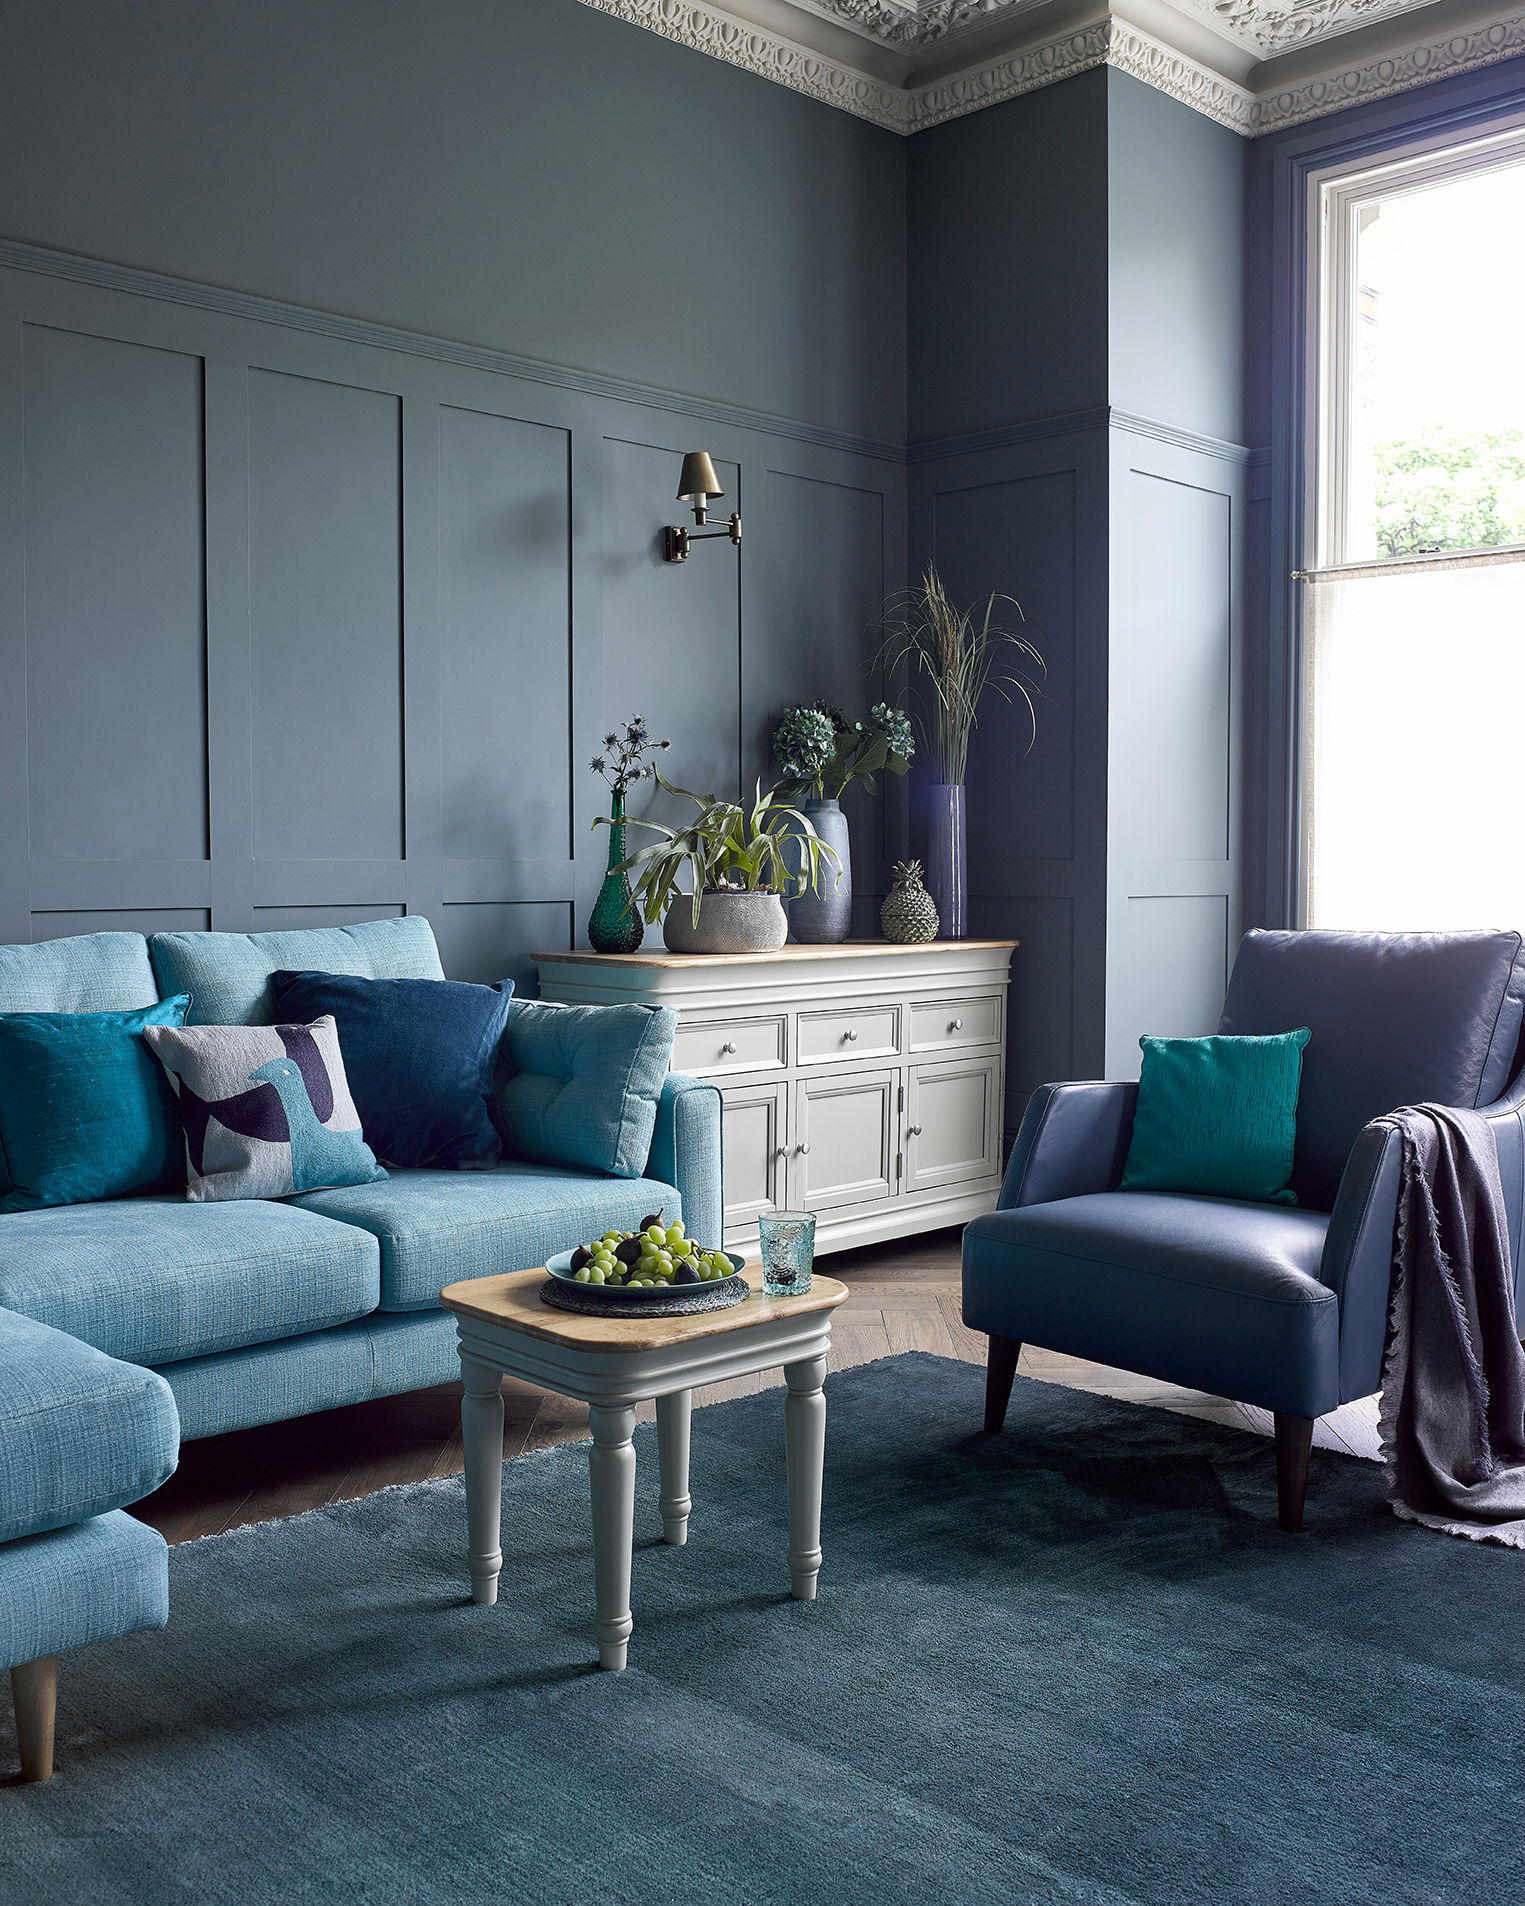 Blue themed living room with grey painted furniture